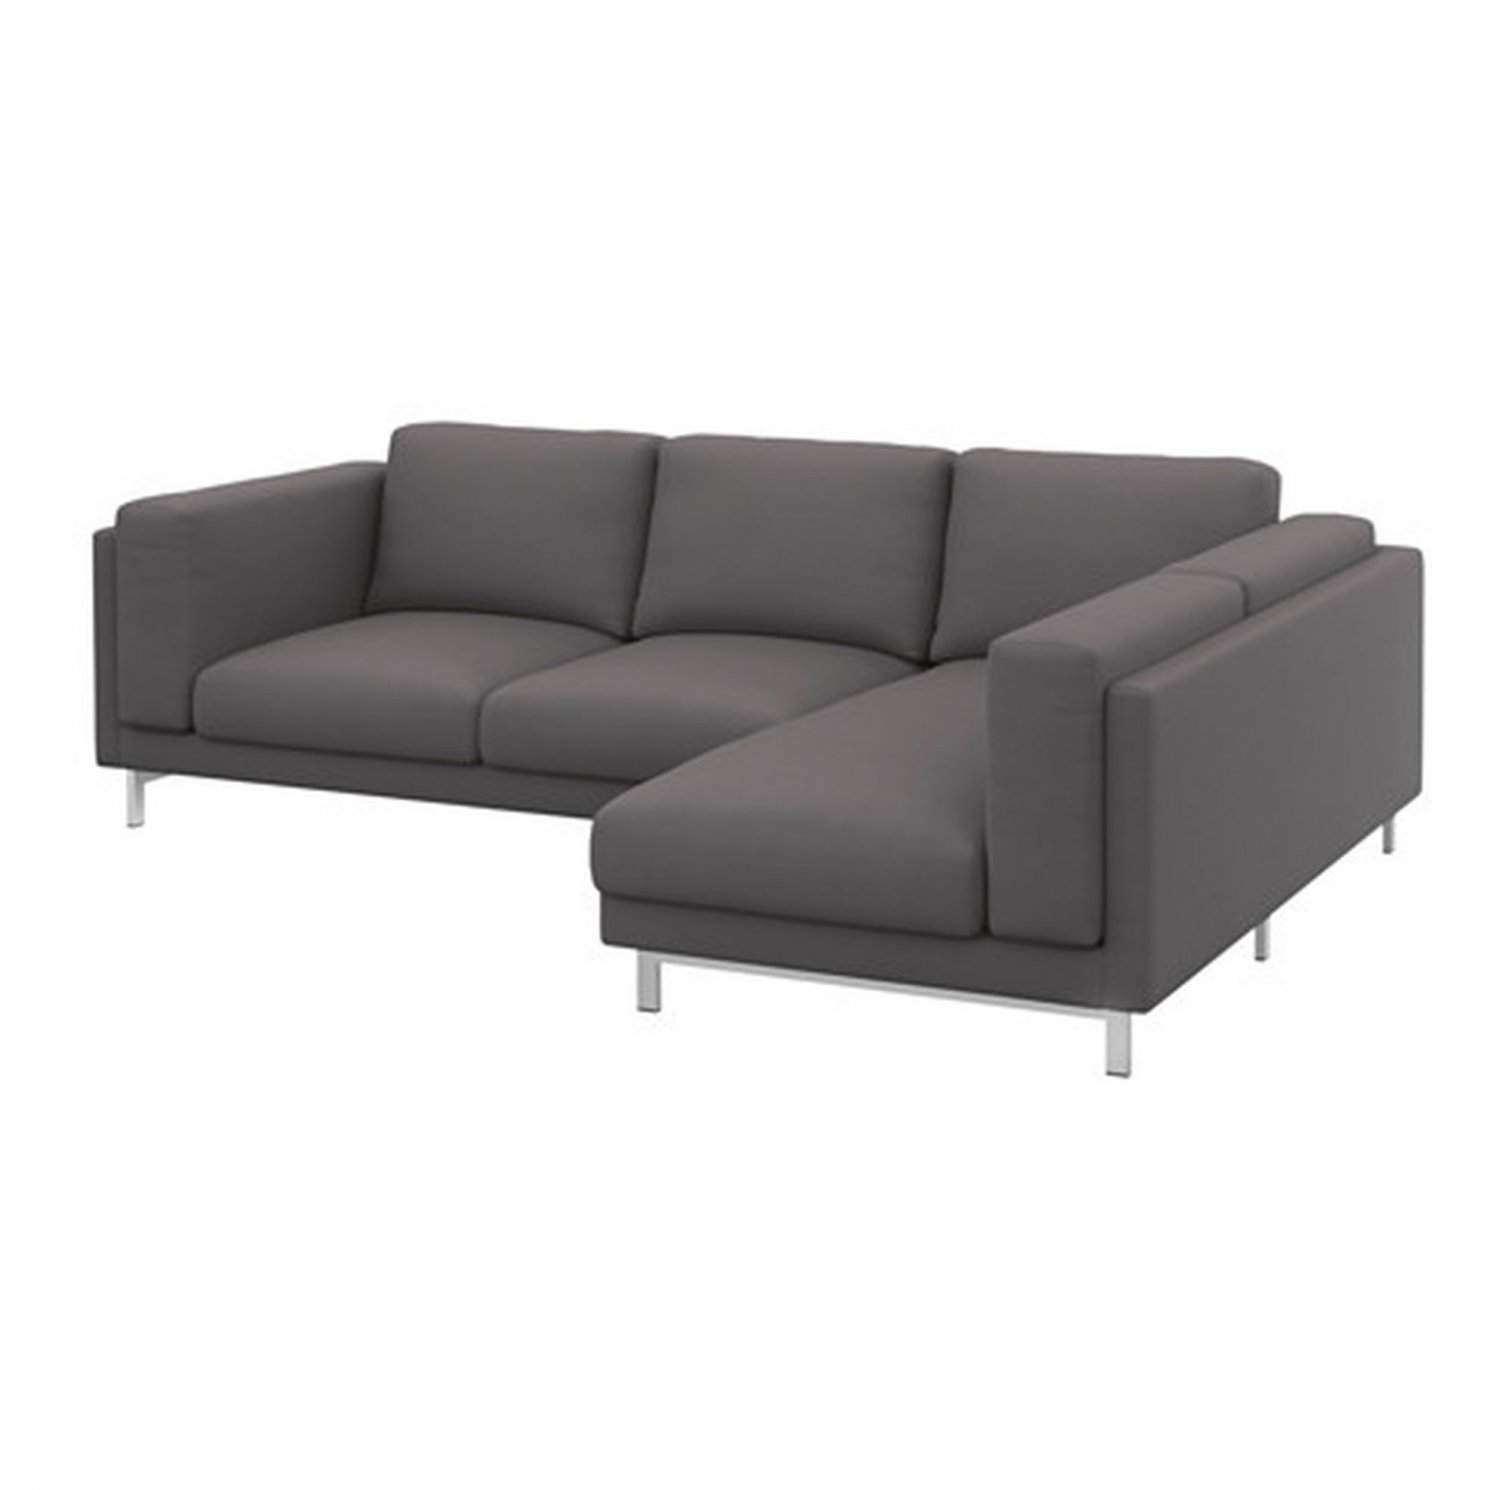 gray linen sofa slipcover modern replacement legs ikea nockeby loveseat w chaise right cover